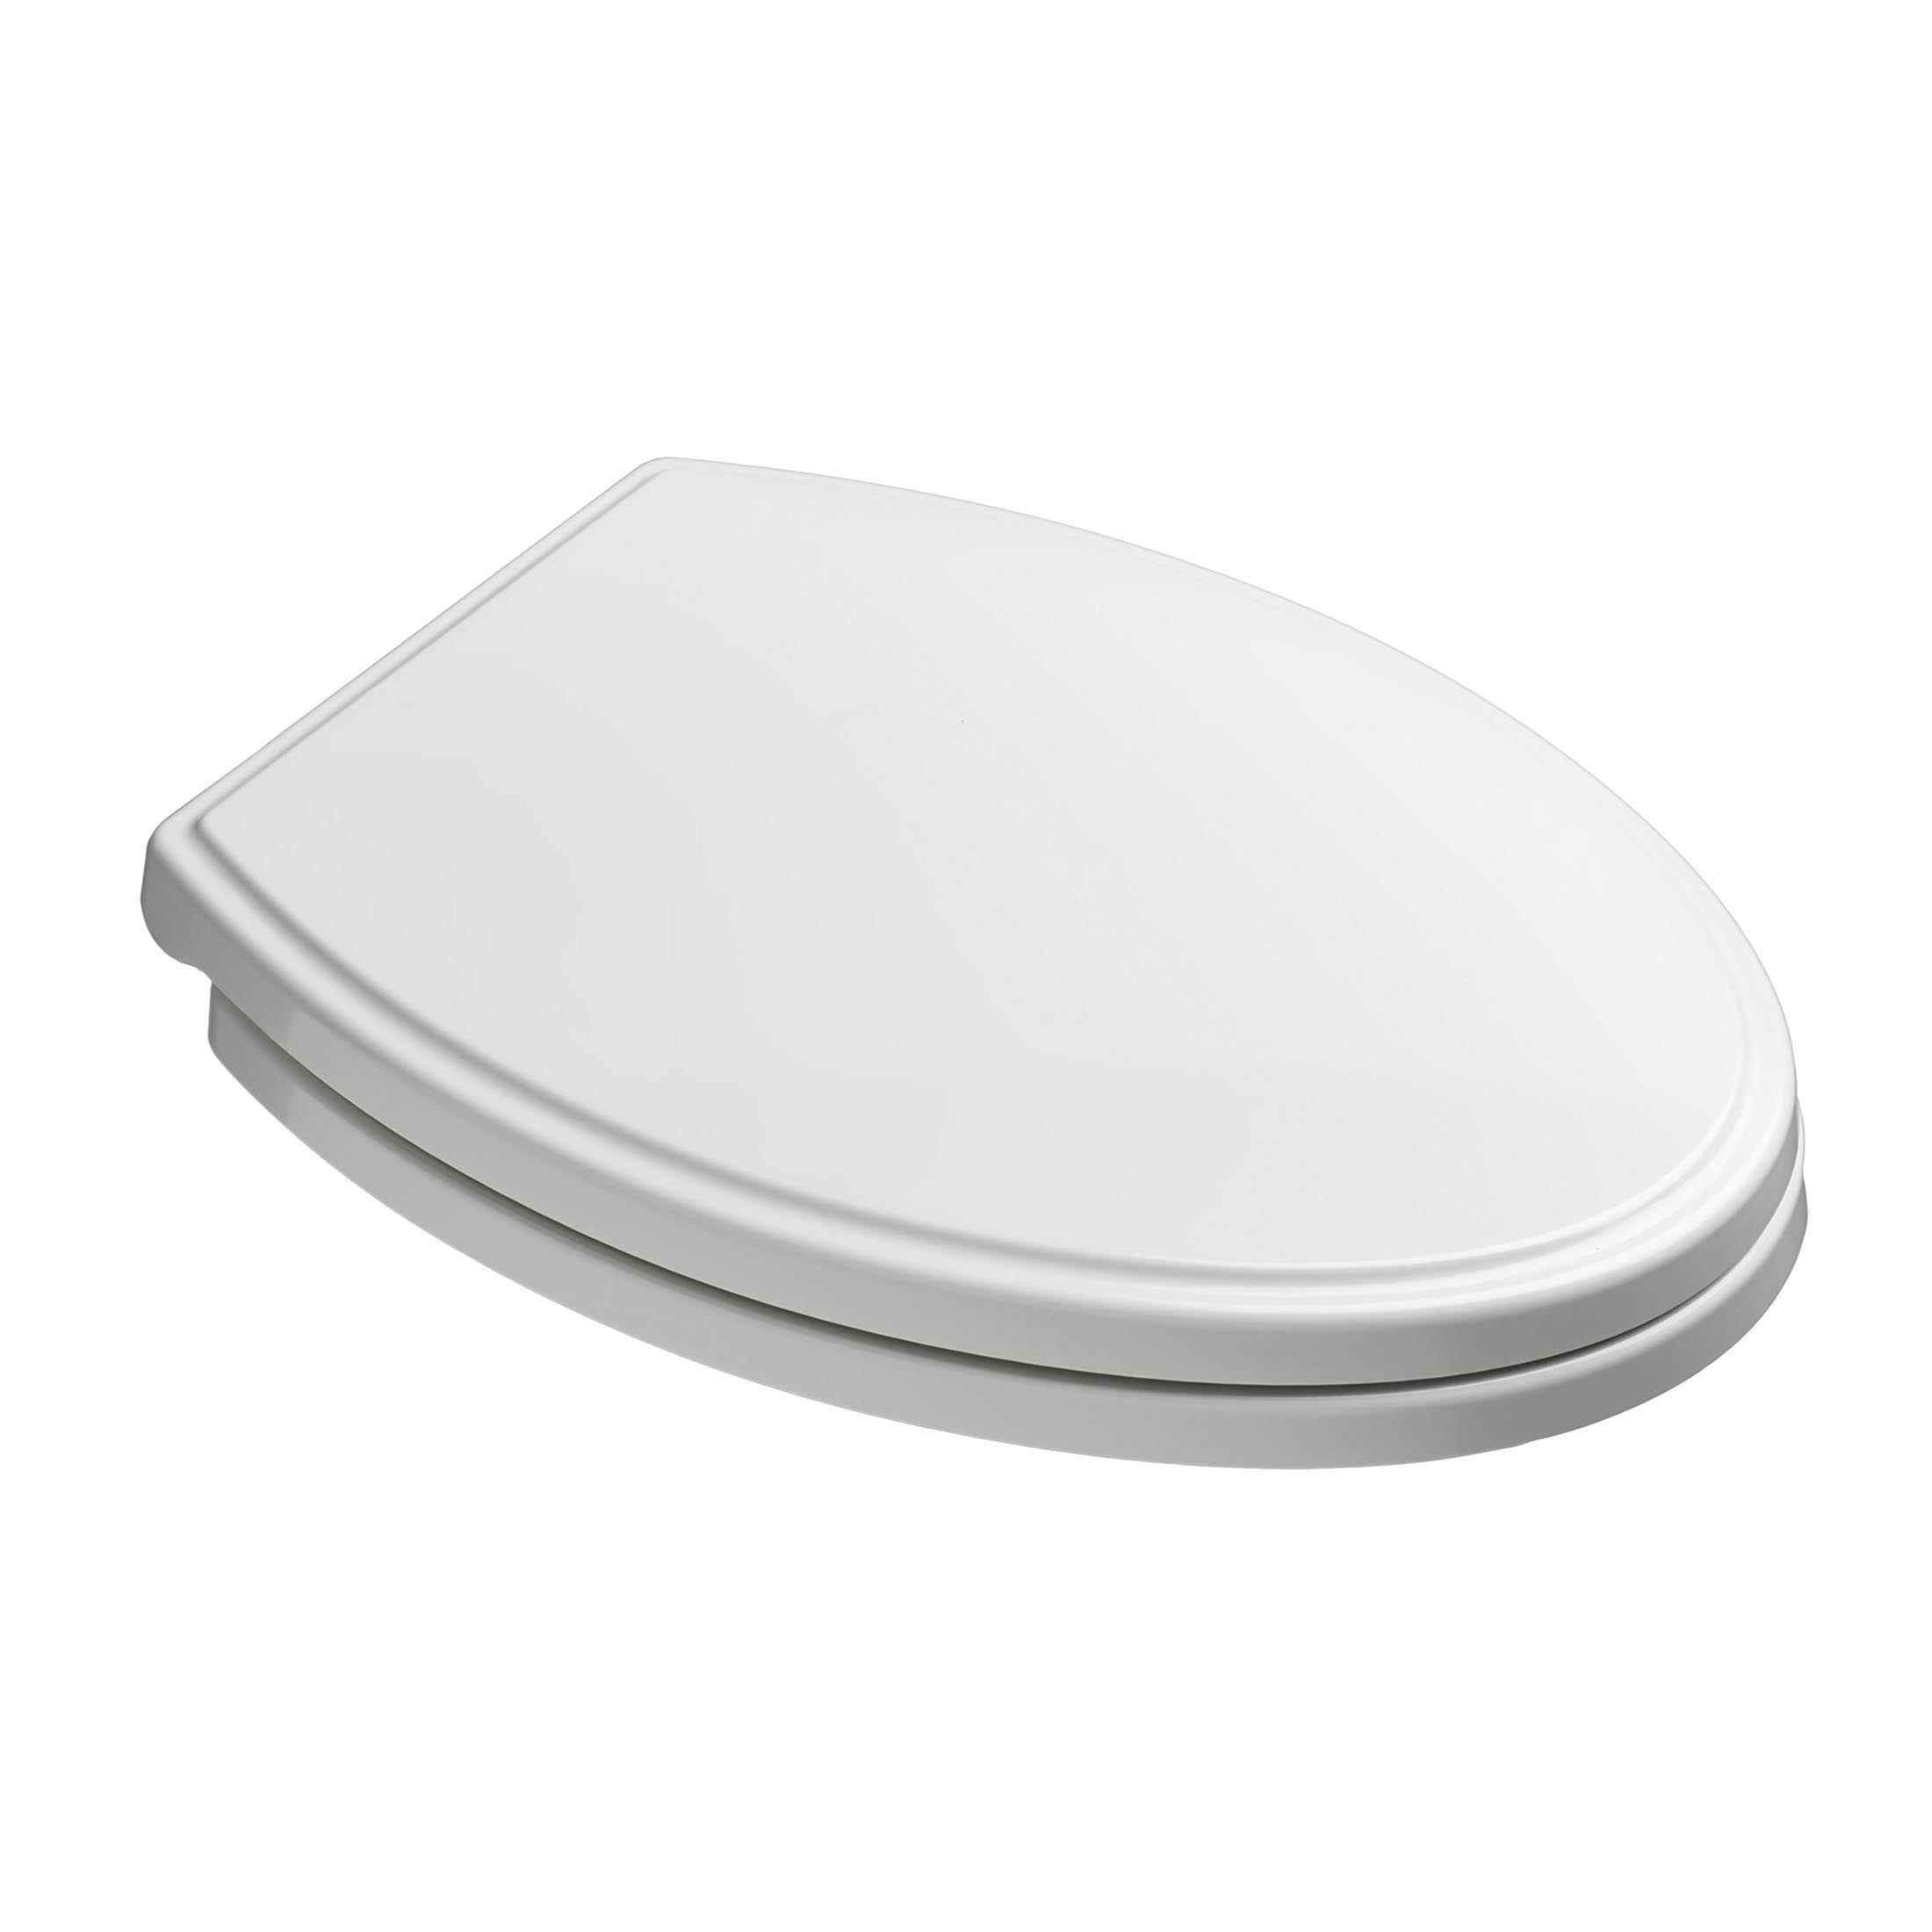 American Standard Toilet Seats >> Consolidated Supply Co American Standard 5214210 020 Town